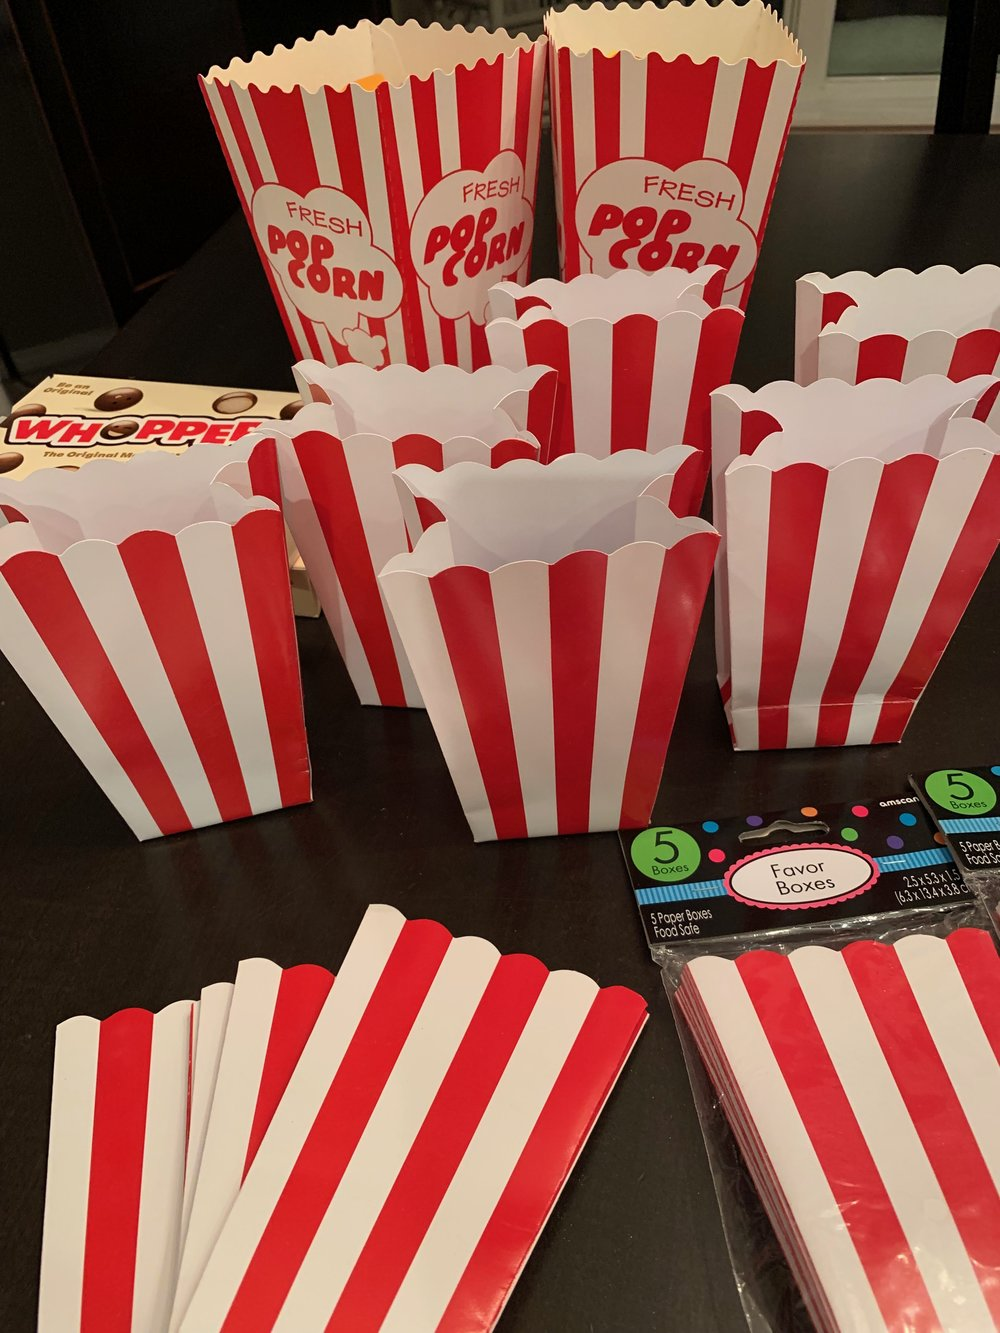 The small popcorn containers will be given to teachers but the two larger ones with print are reserved.